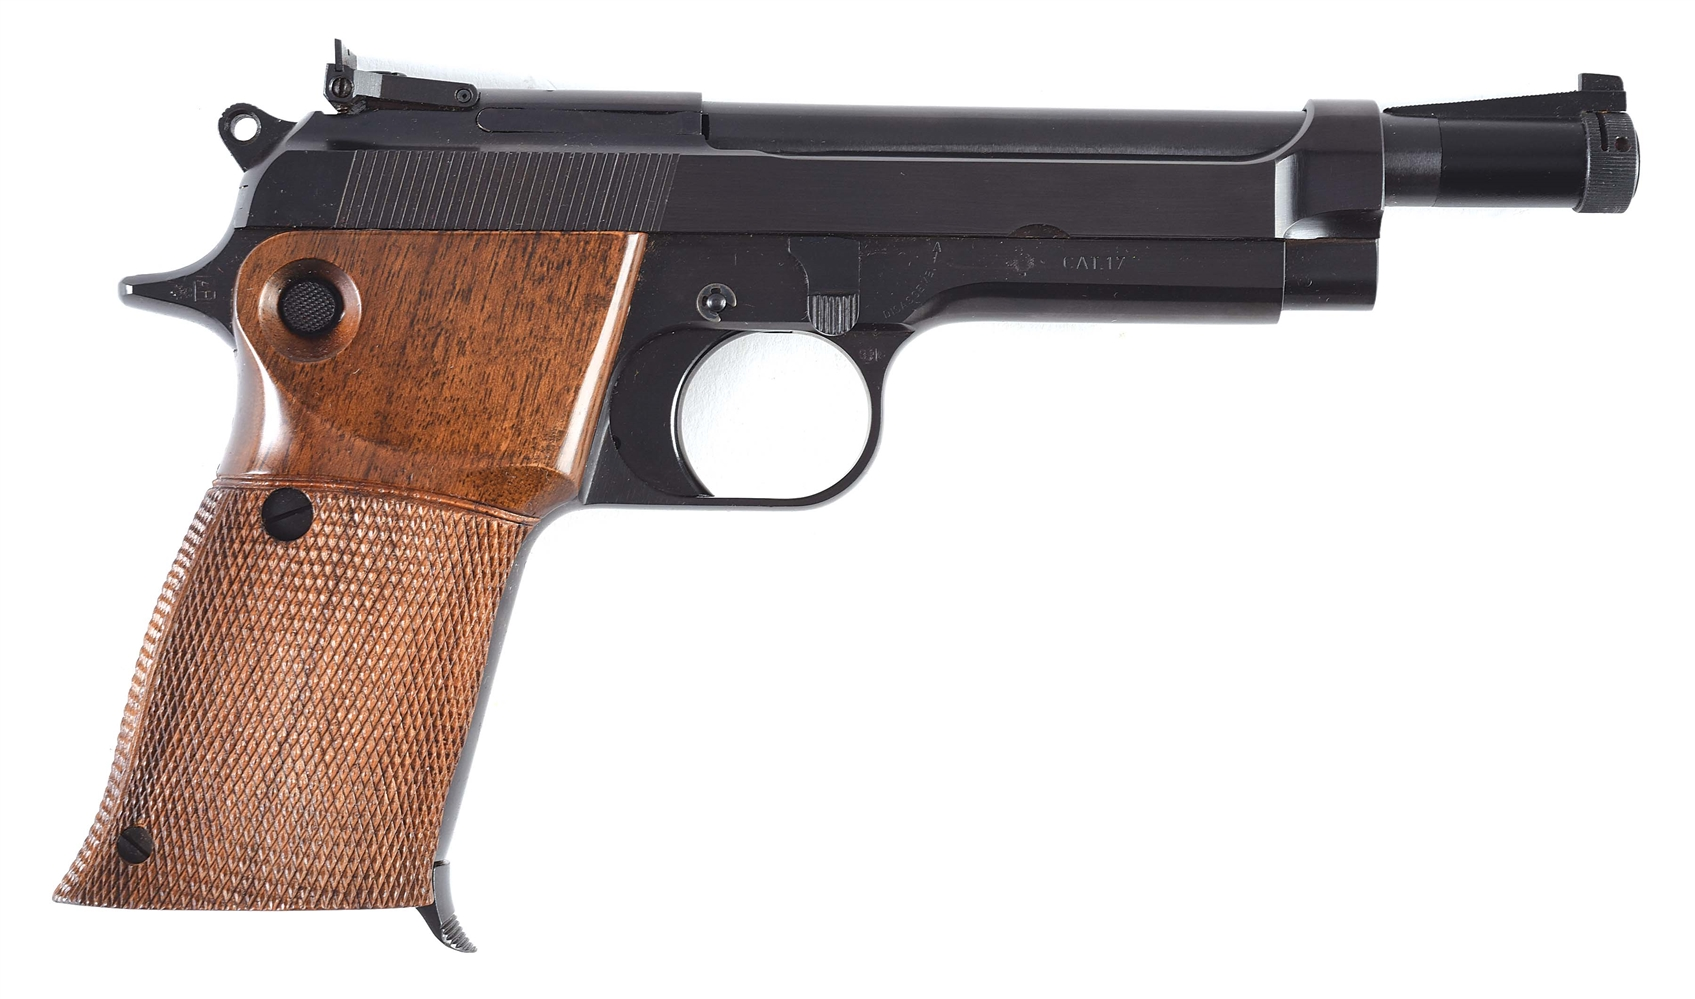 (C) Exceptionally Rare Beretta 952 Special Target Semi-Automatic Pistol.